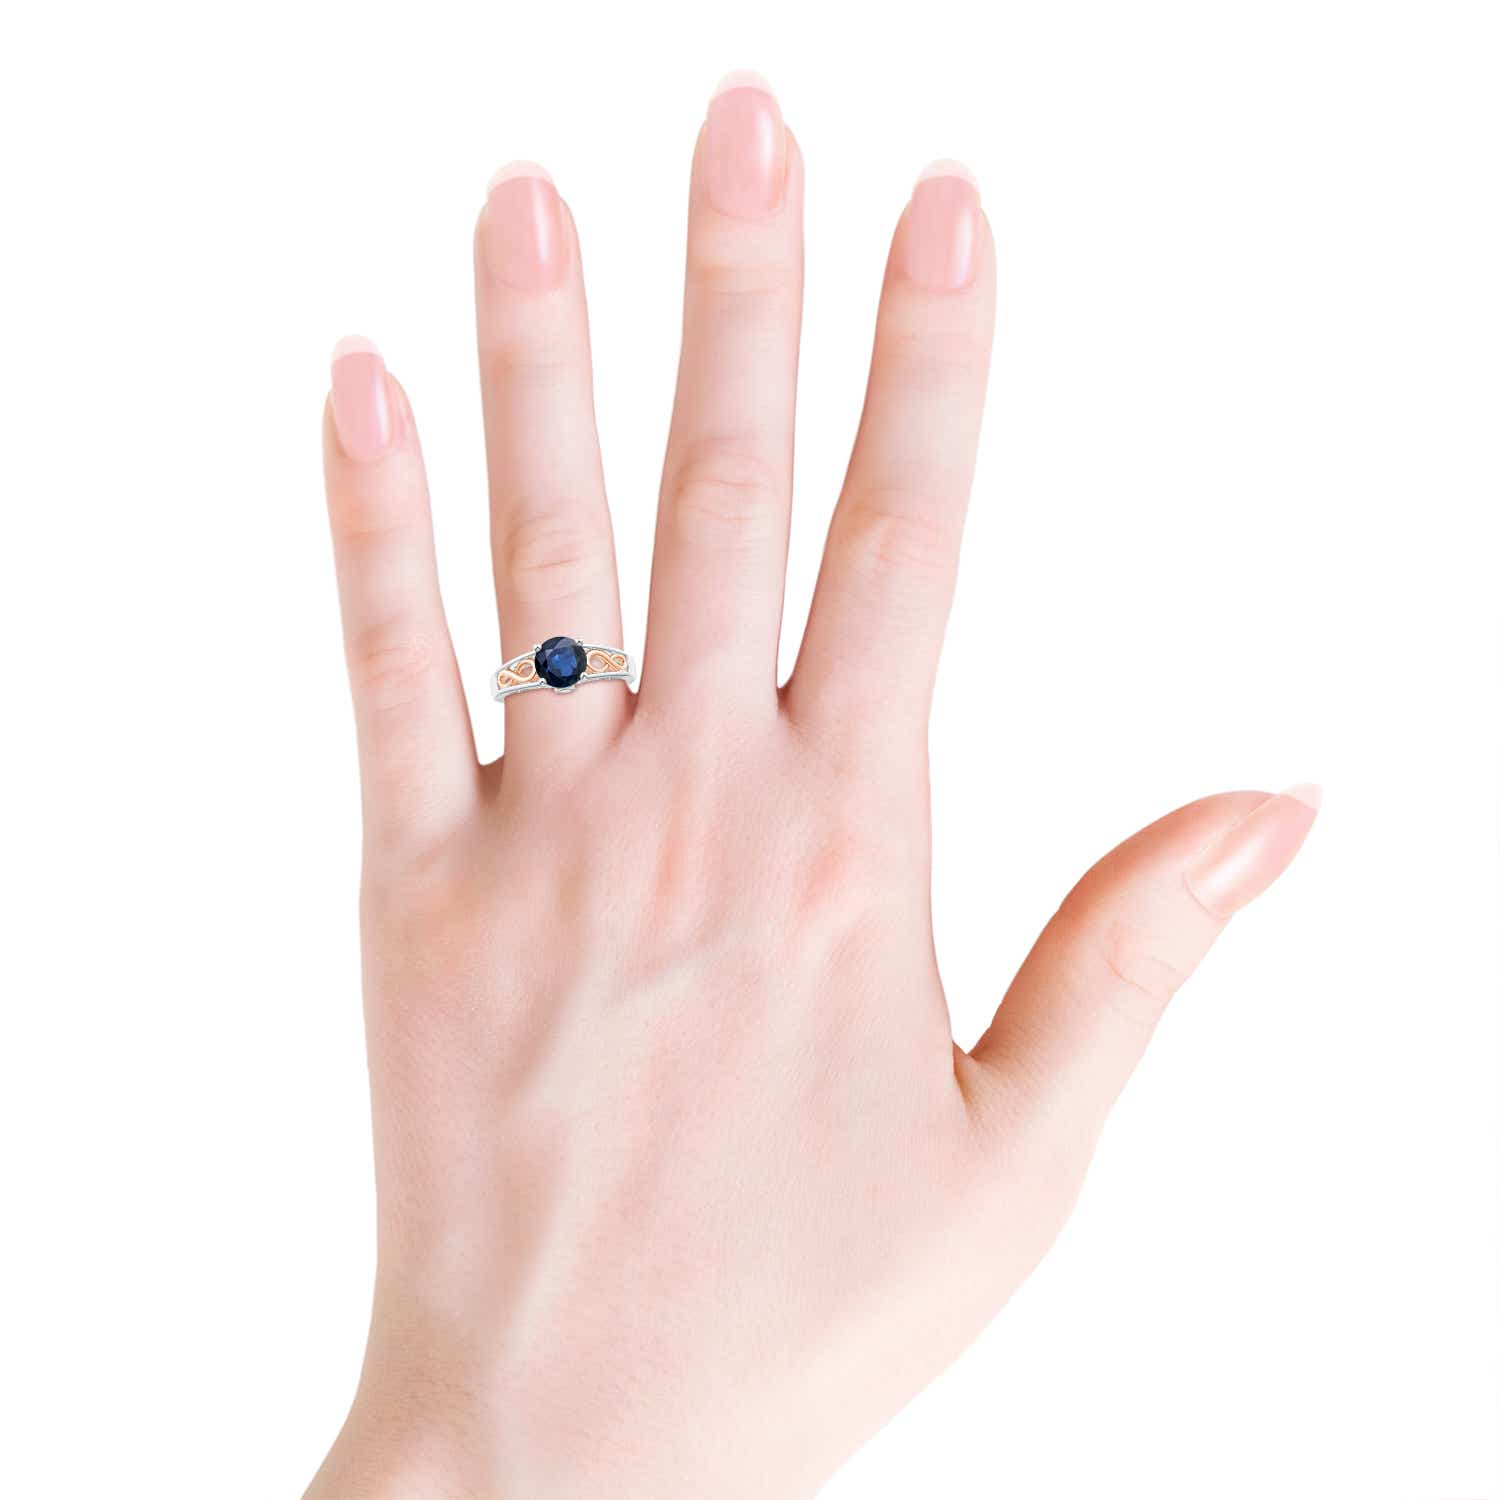 Solitaire Blue Sapphire Wedding Ring in Two Tone - Angara.com